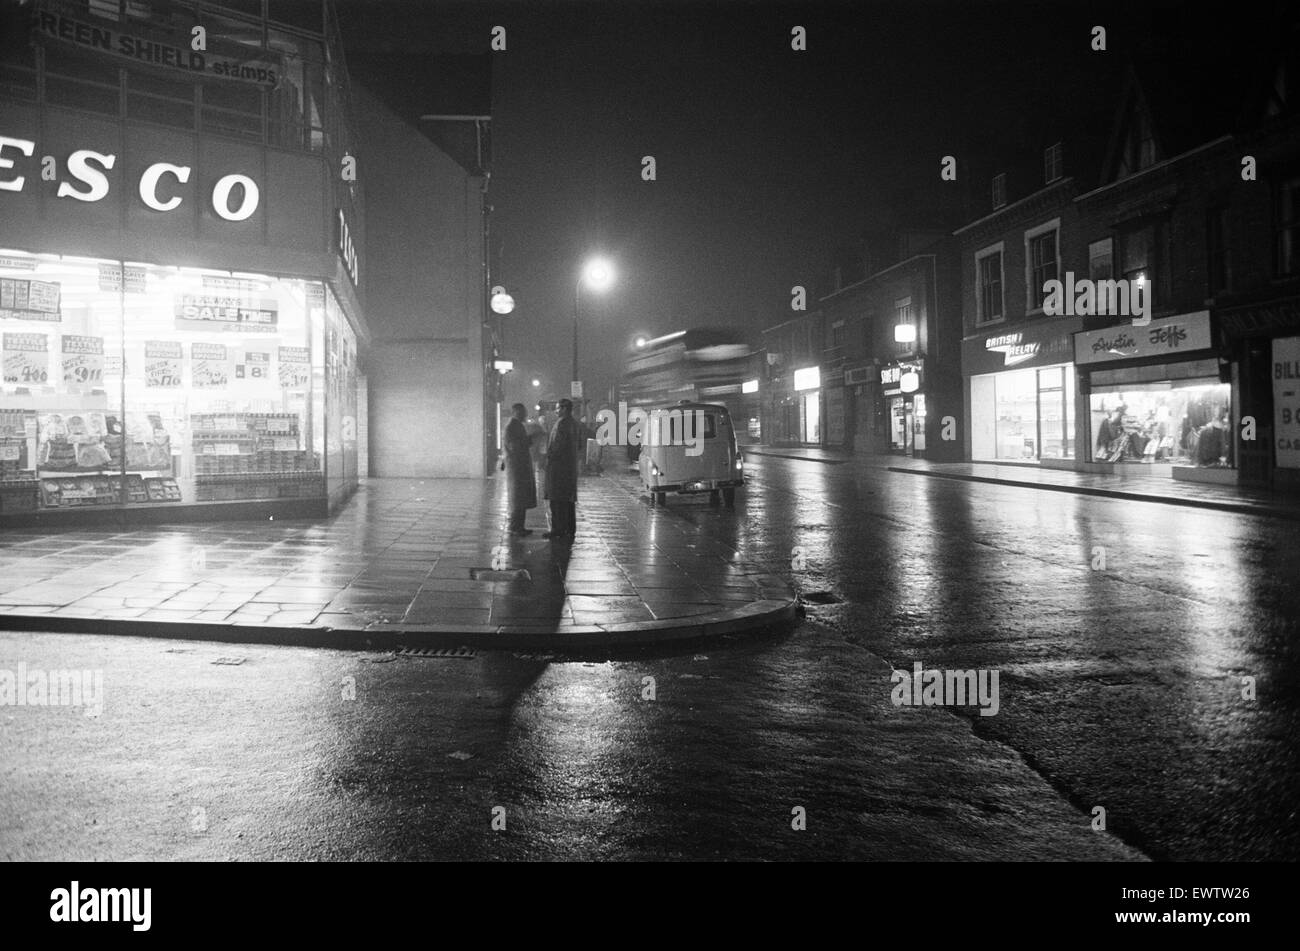 Smethwick, a town in the Sandwell Metropolitan Borough, in the West Midlands of England. March 1964. - Stock Image